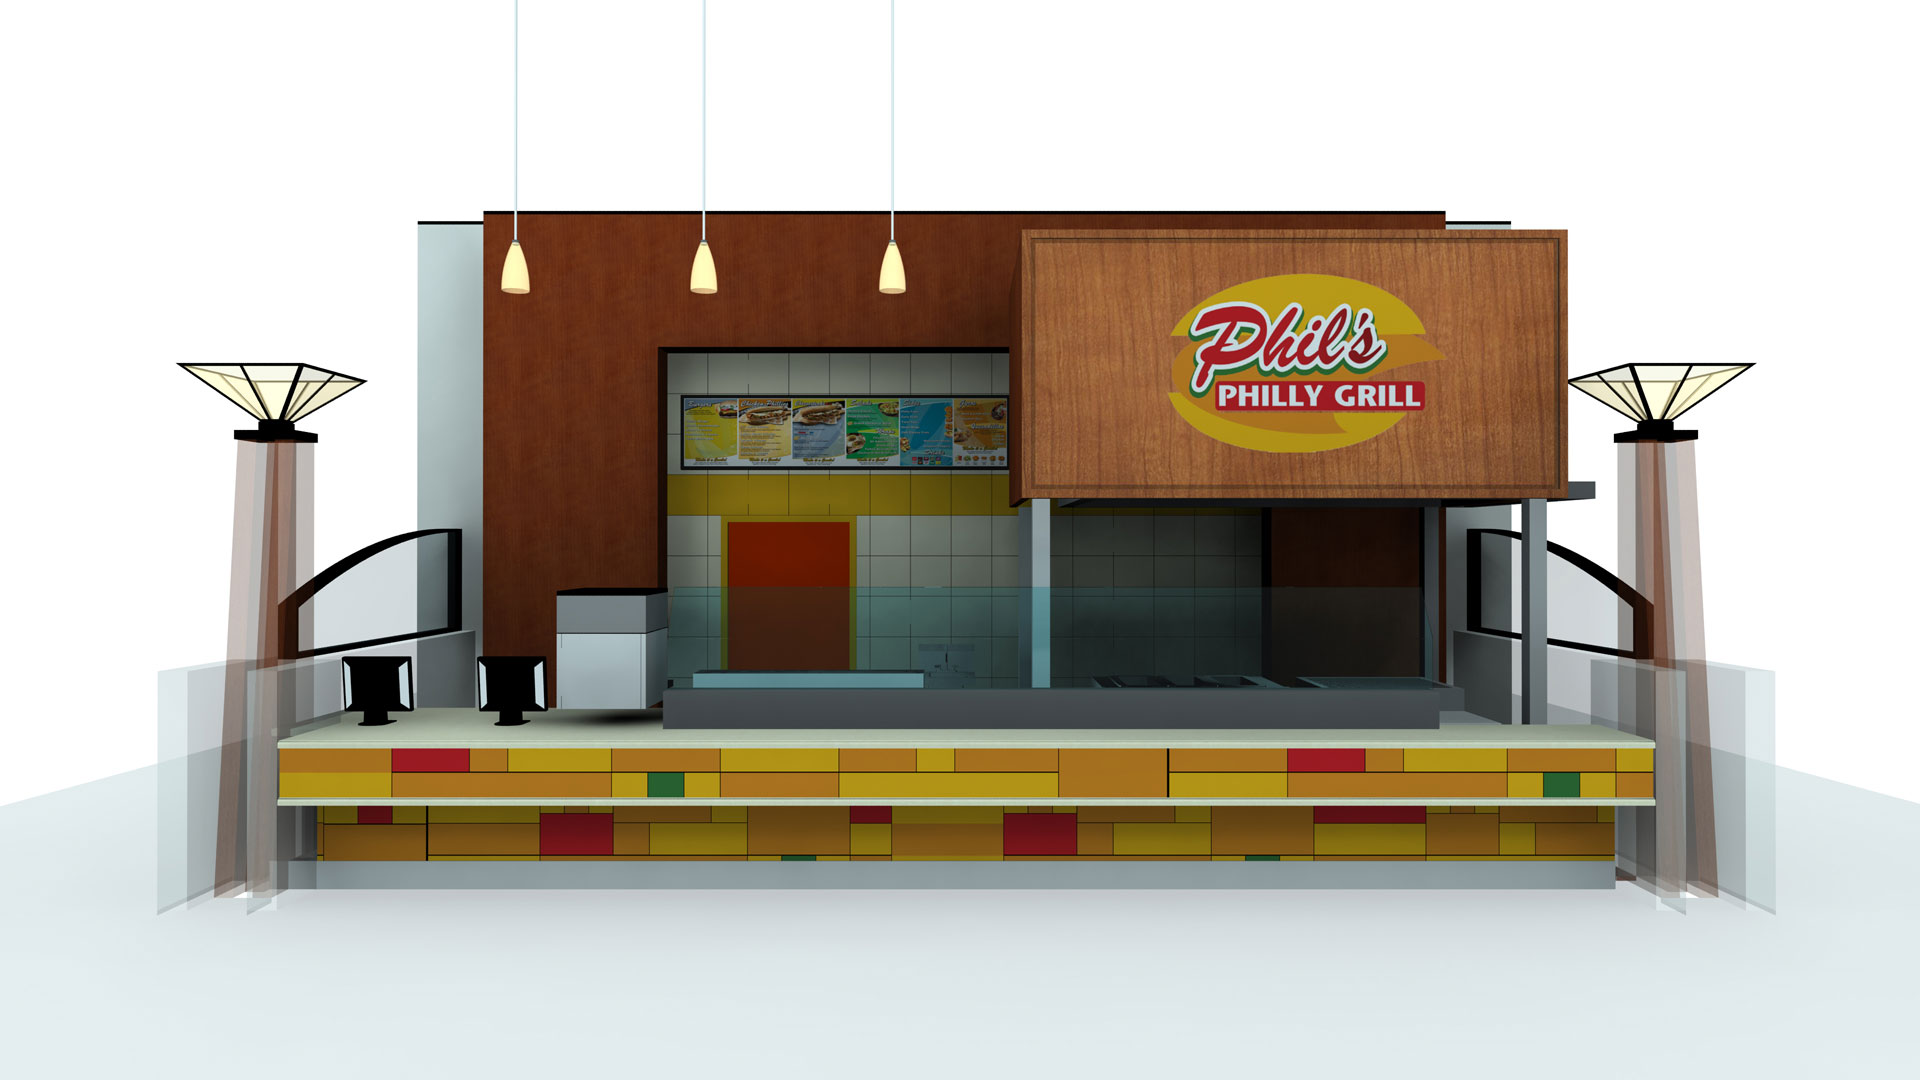 Phils Philly Grill – Retail/Commercial